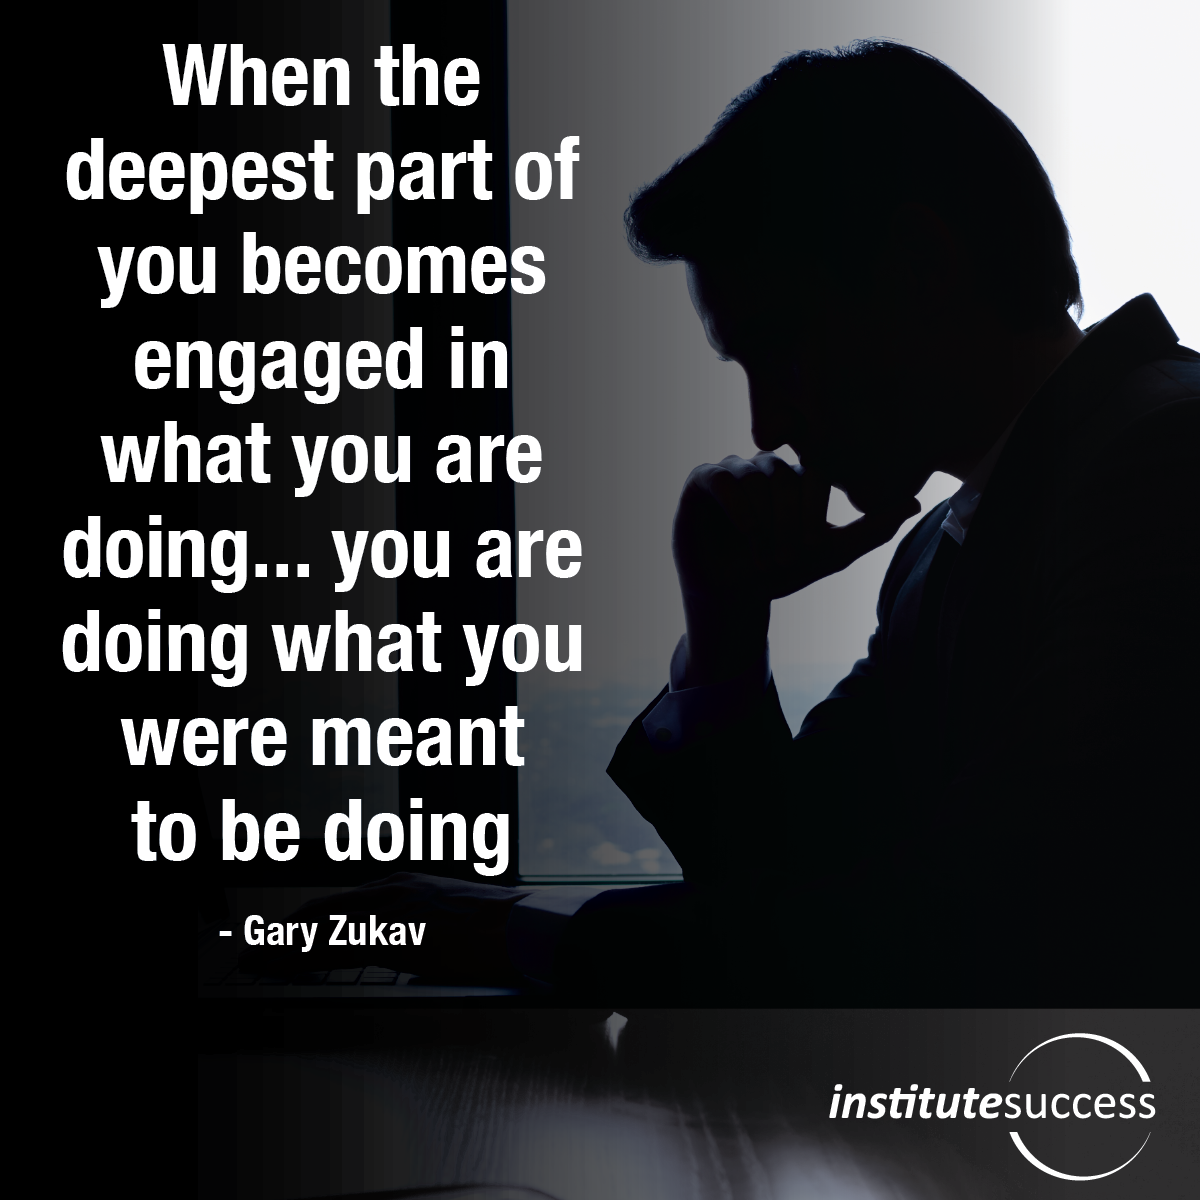 When the deepest part of you becomes engaged in what you are doing… you are doing what you were meant to be doing – Gary Zukav